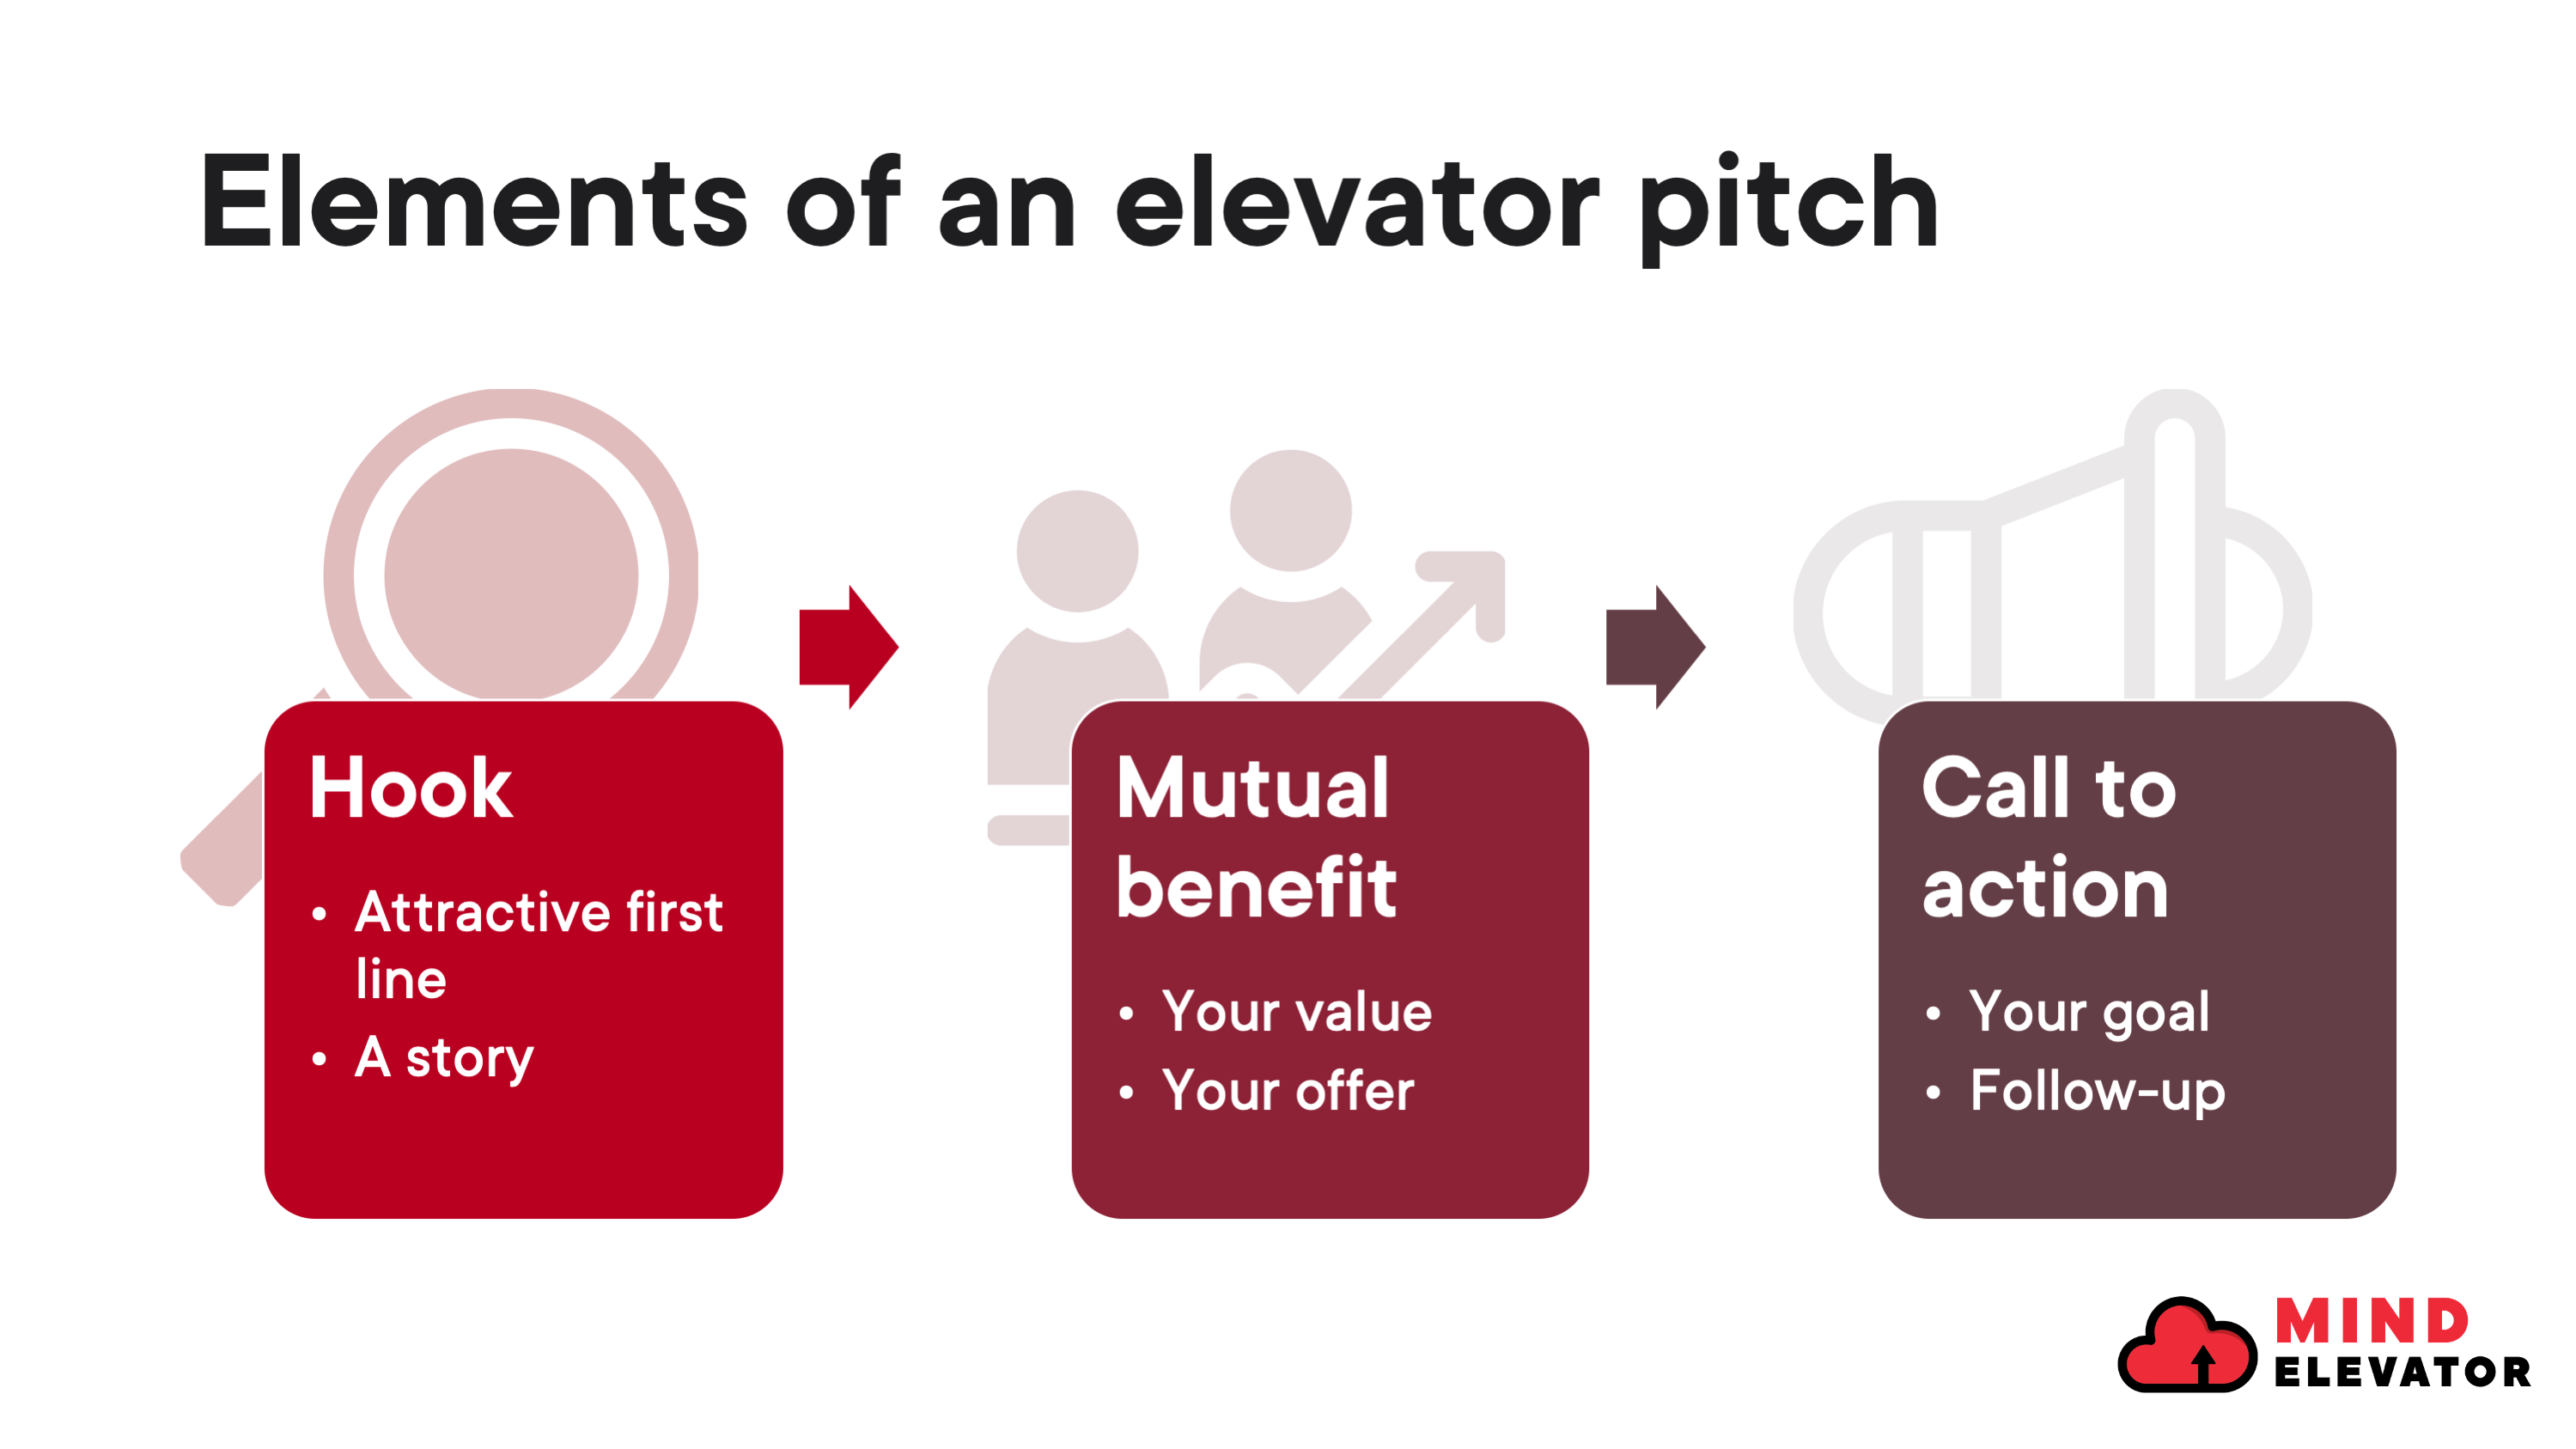 Three elements of an elevator pitch